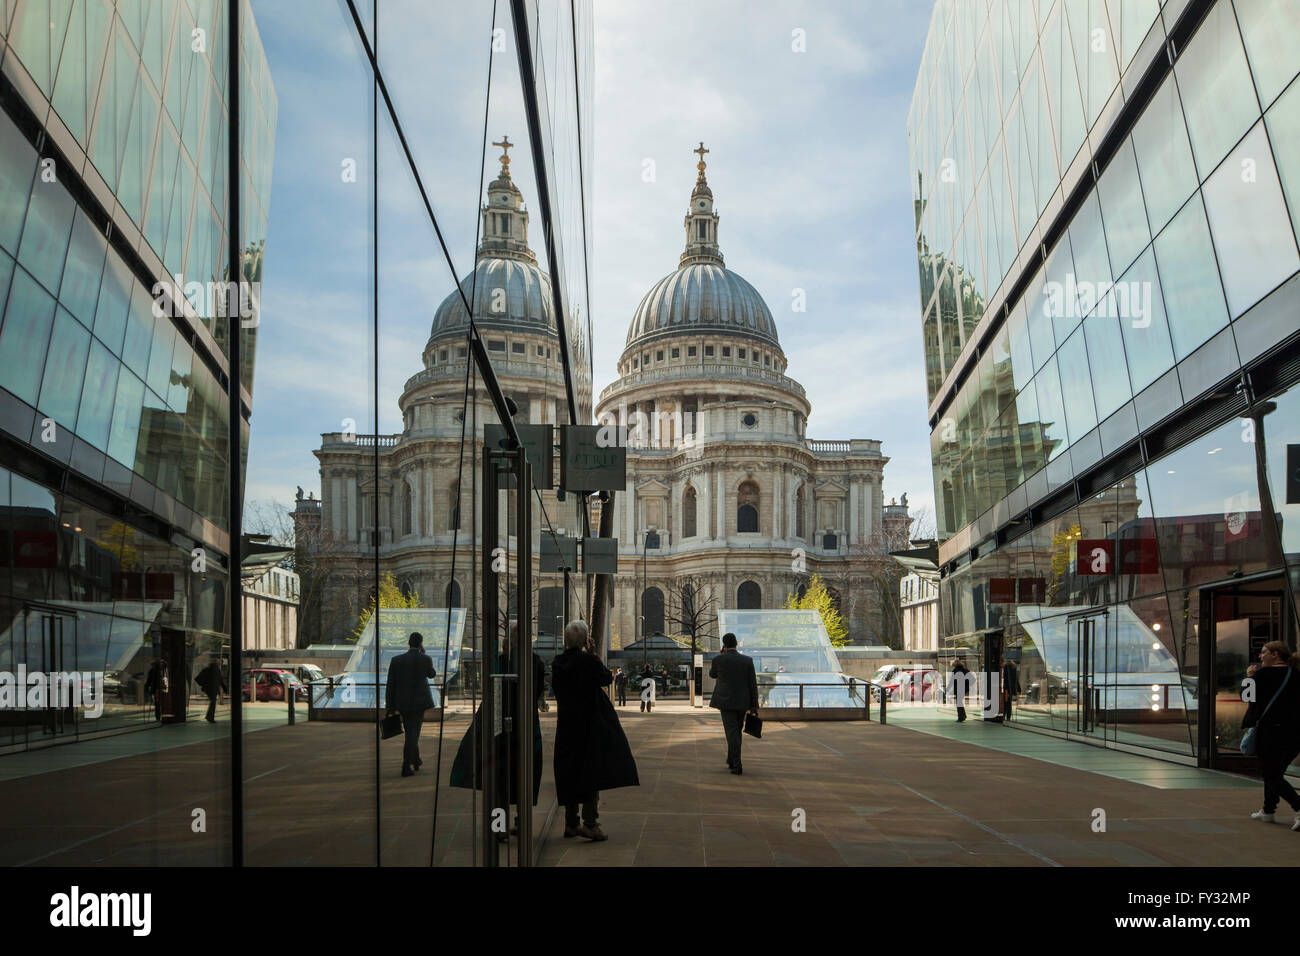 St Paul's Cathedral seen from One New Change, London, England. - Stock Image